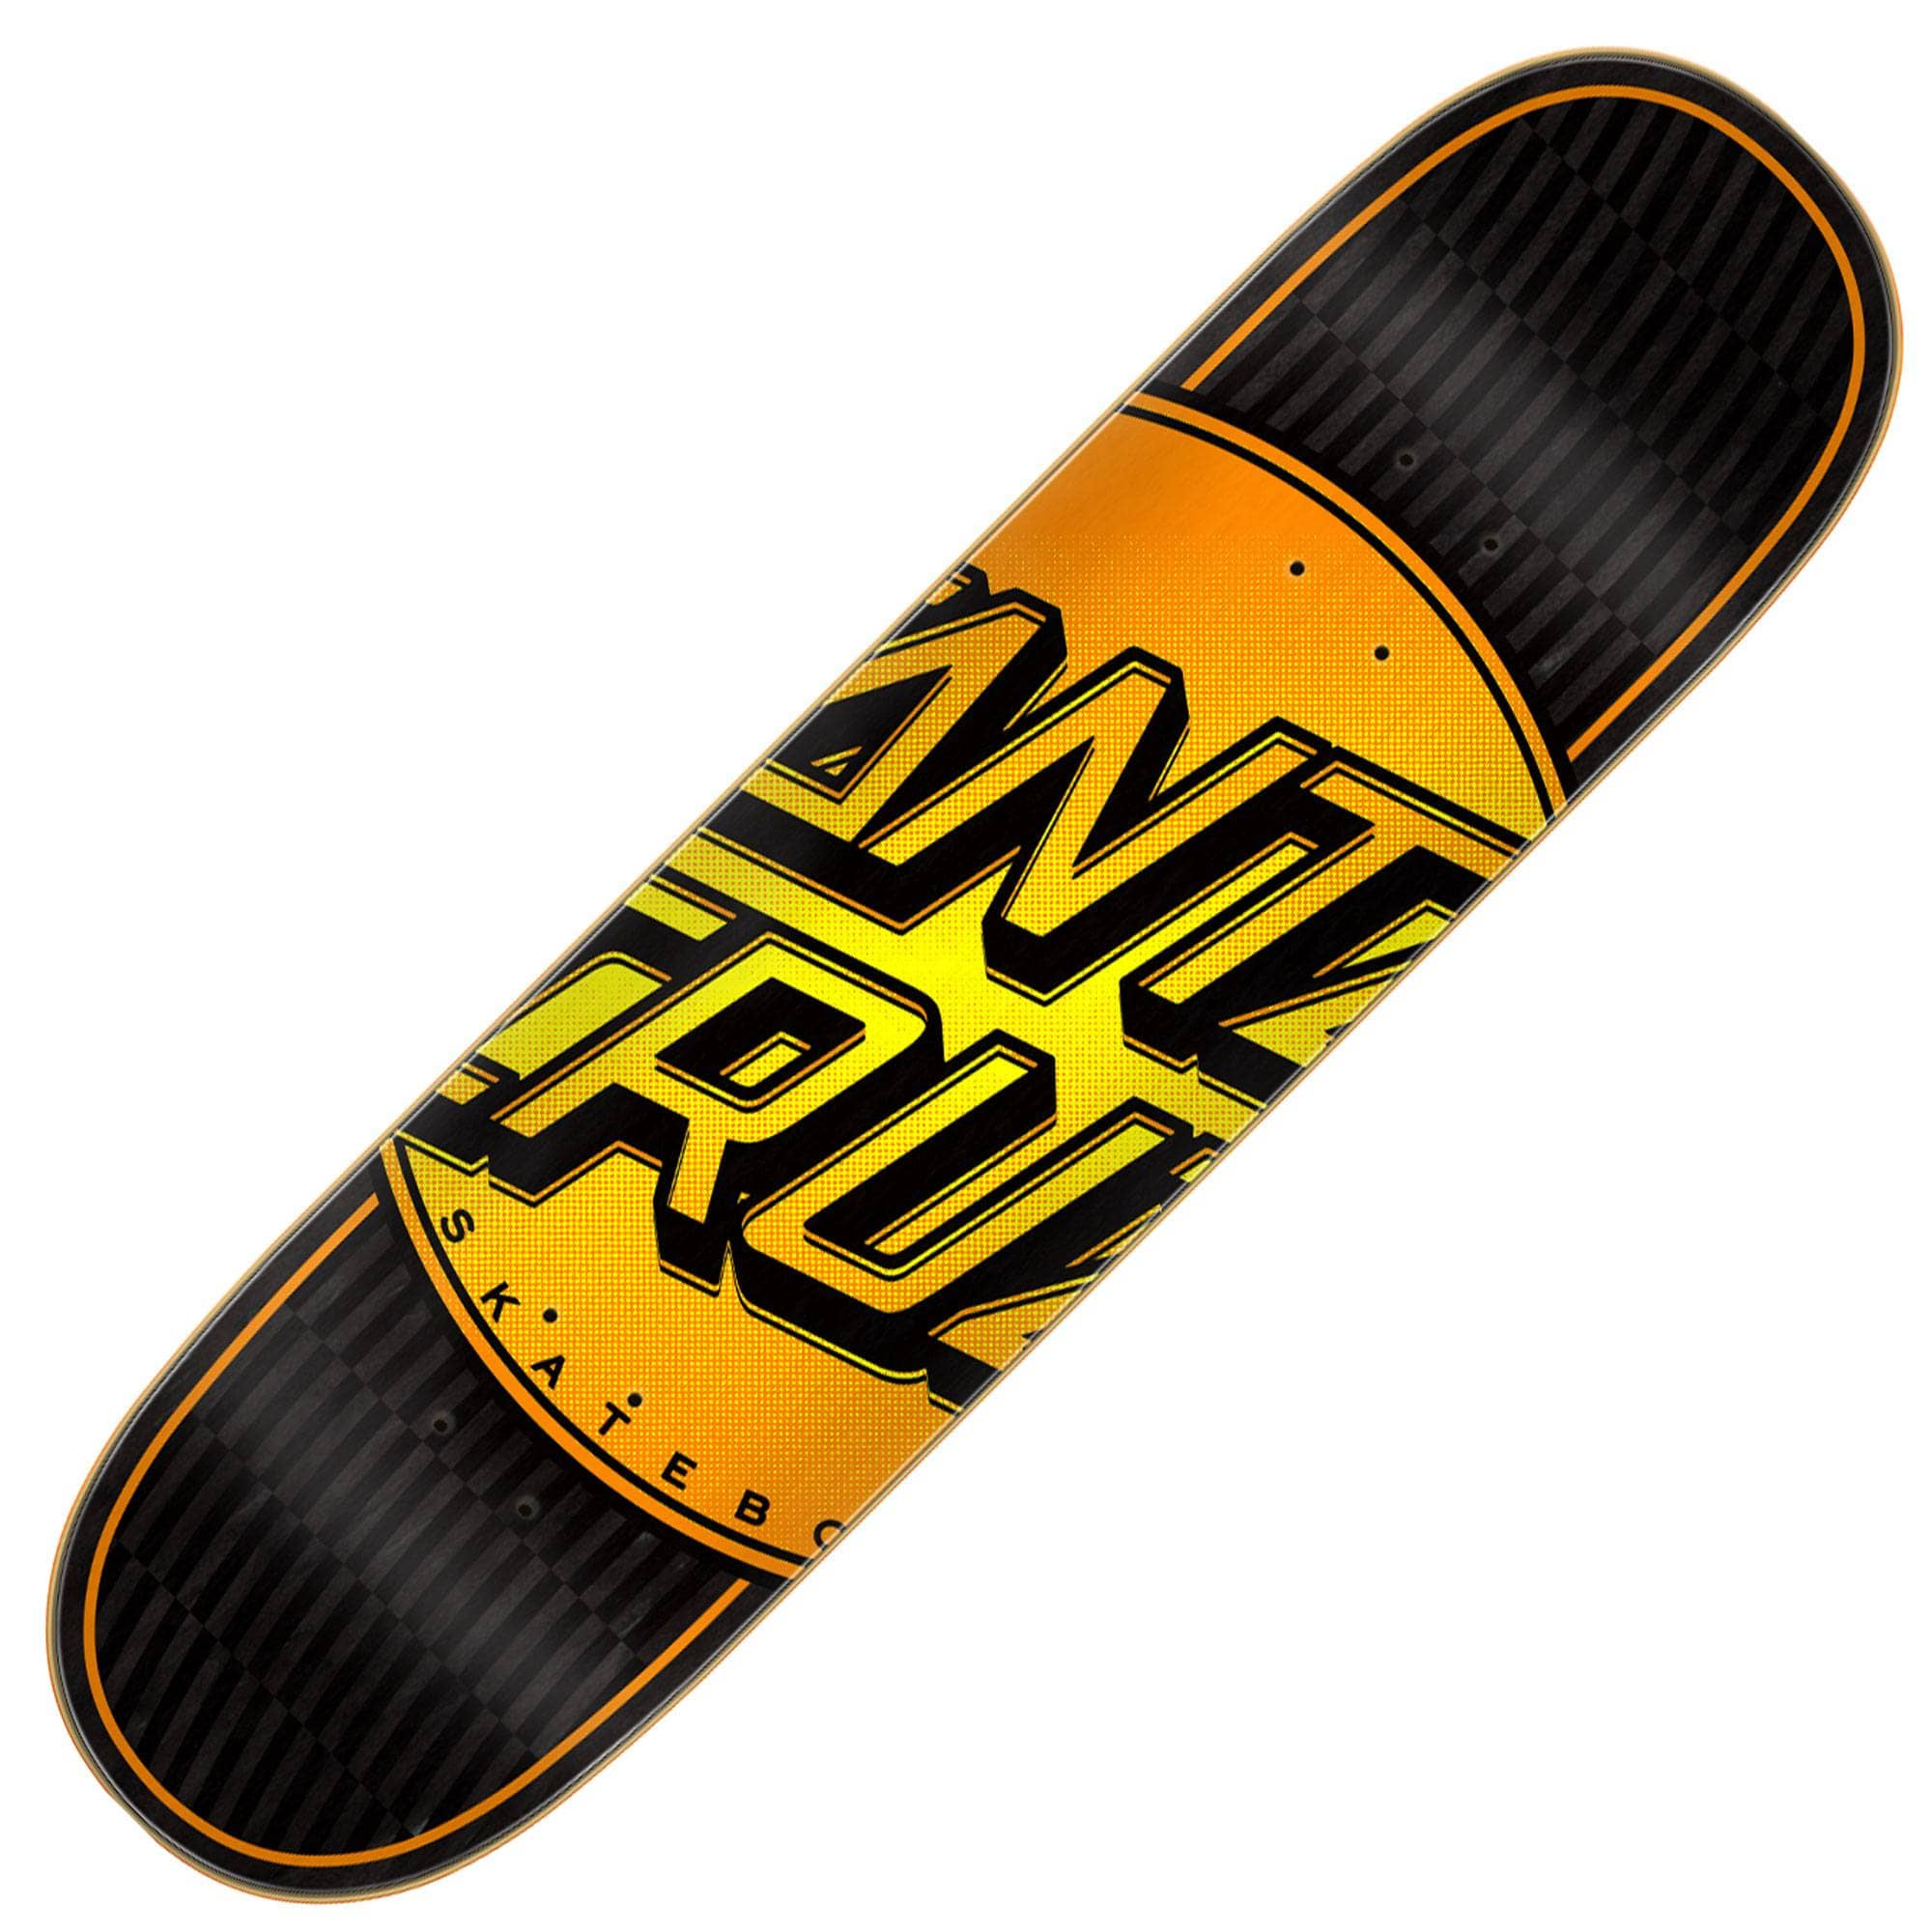 Santa Cruz doska Total dot VX deck 8.0 -  orange/ black